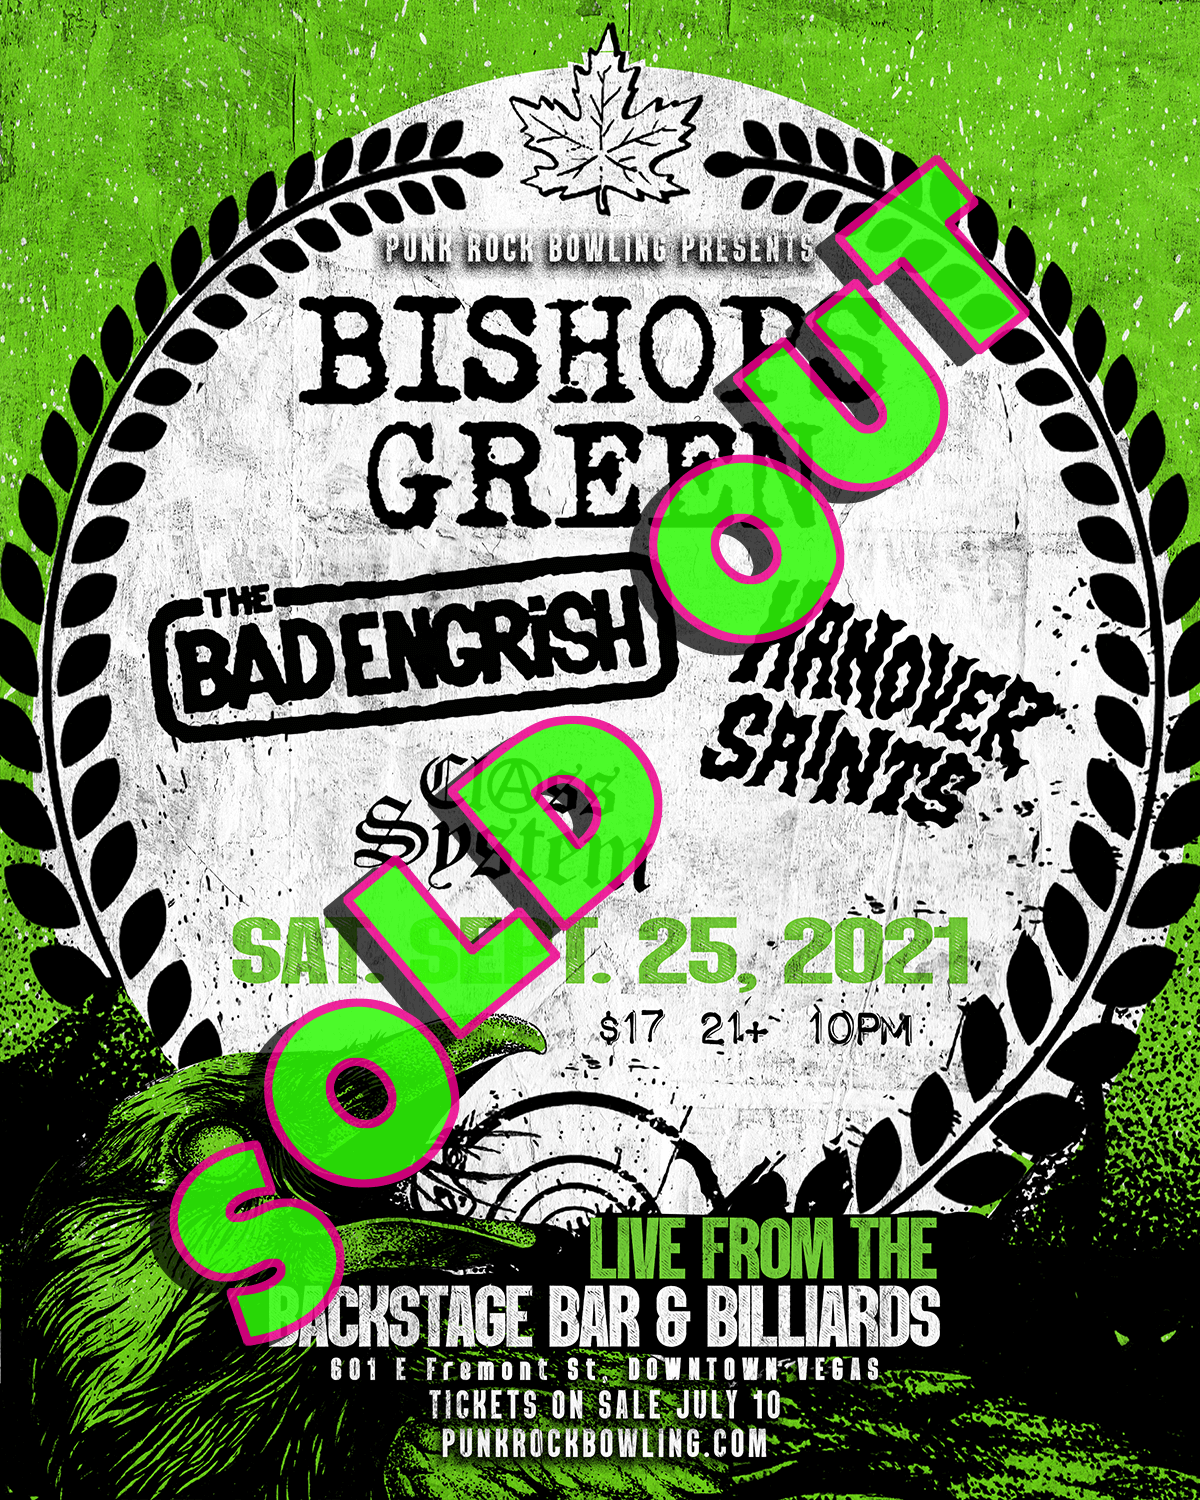 BISHOPS GREEN, THE BAD ENGRISH, HANOVER SAINTS, CLASS SYSTEM OI SHOW PUNK ROCK BOWLING 2021 AFTER PARTY SOLD OUT